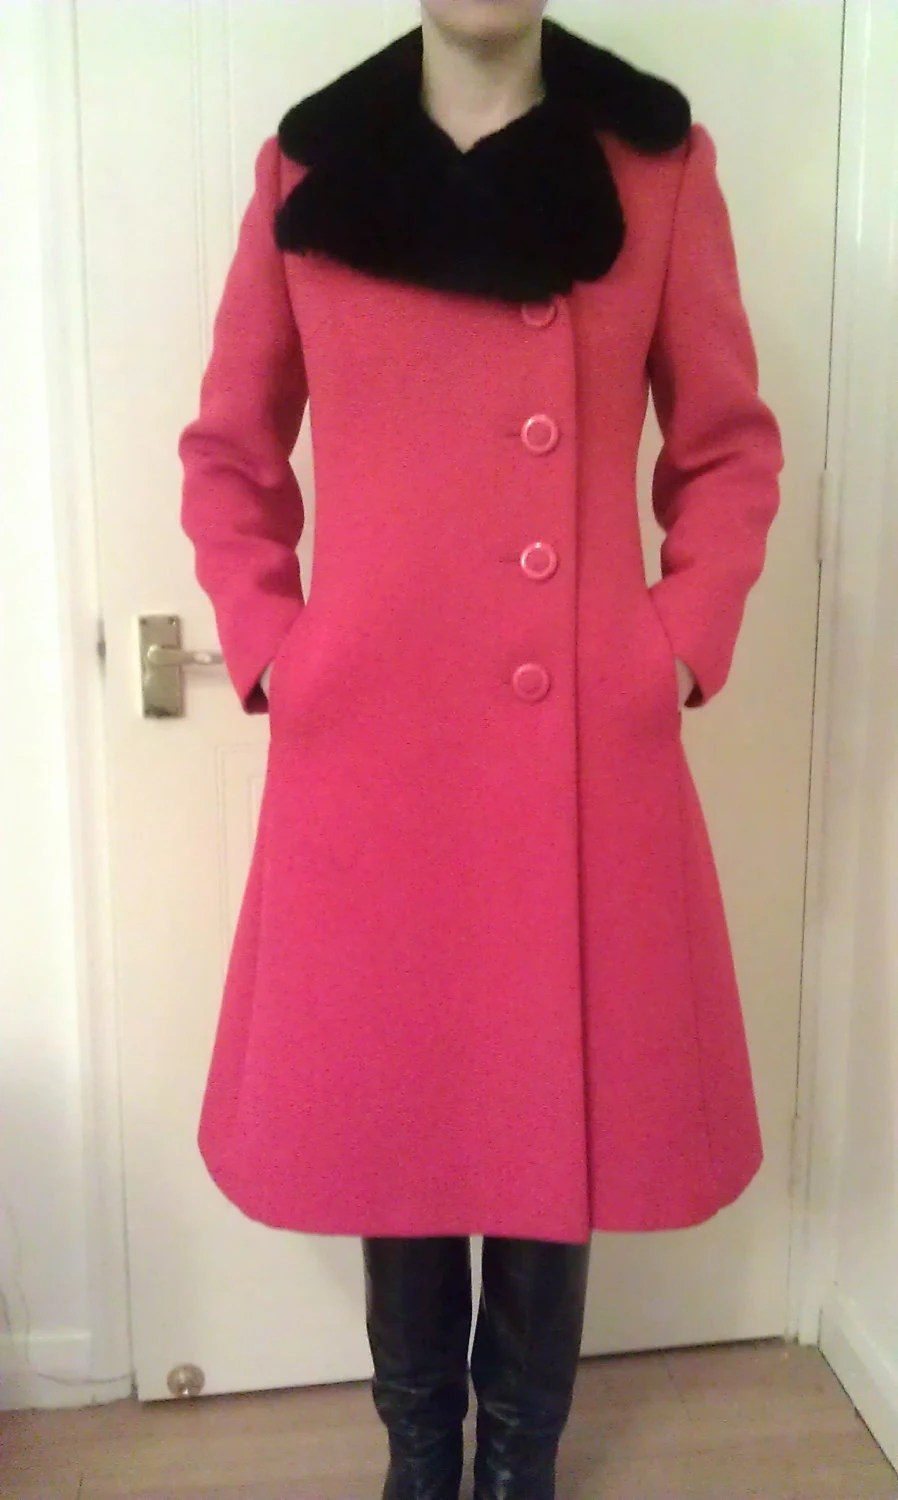 Vintage 1960s winter coat - Bright red with black fur collar